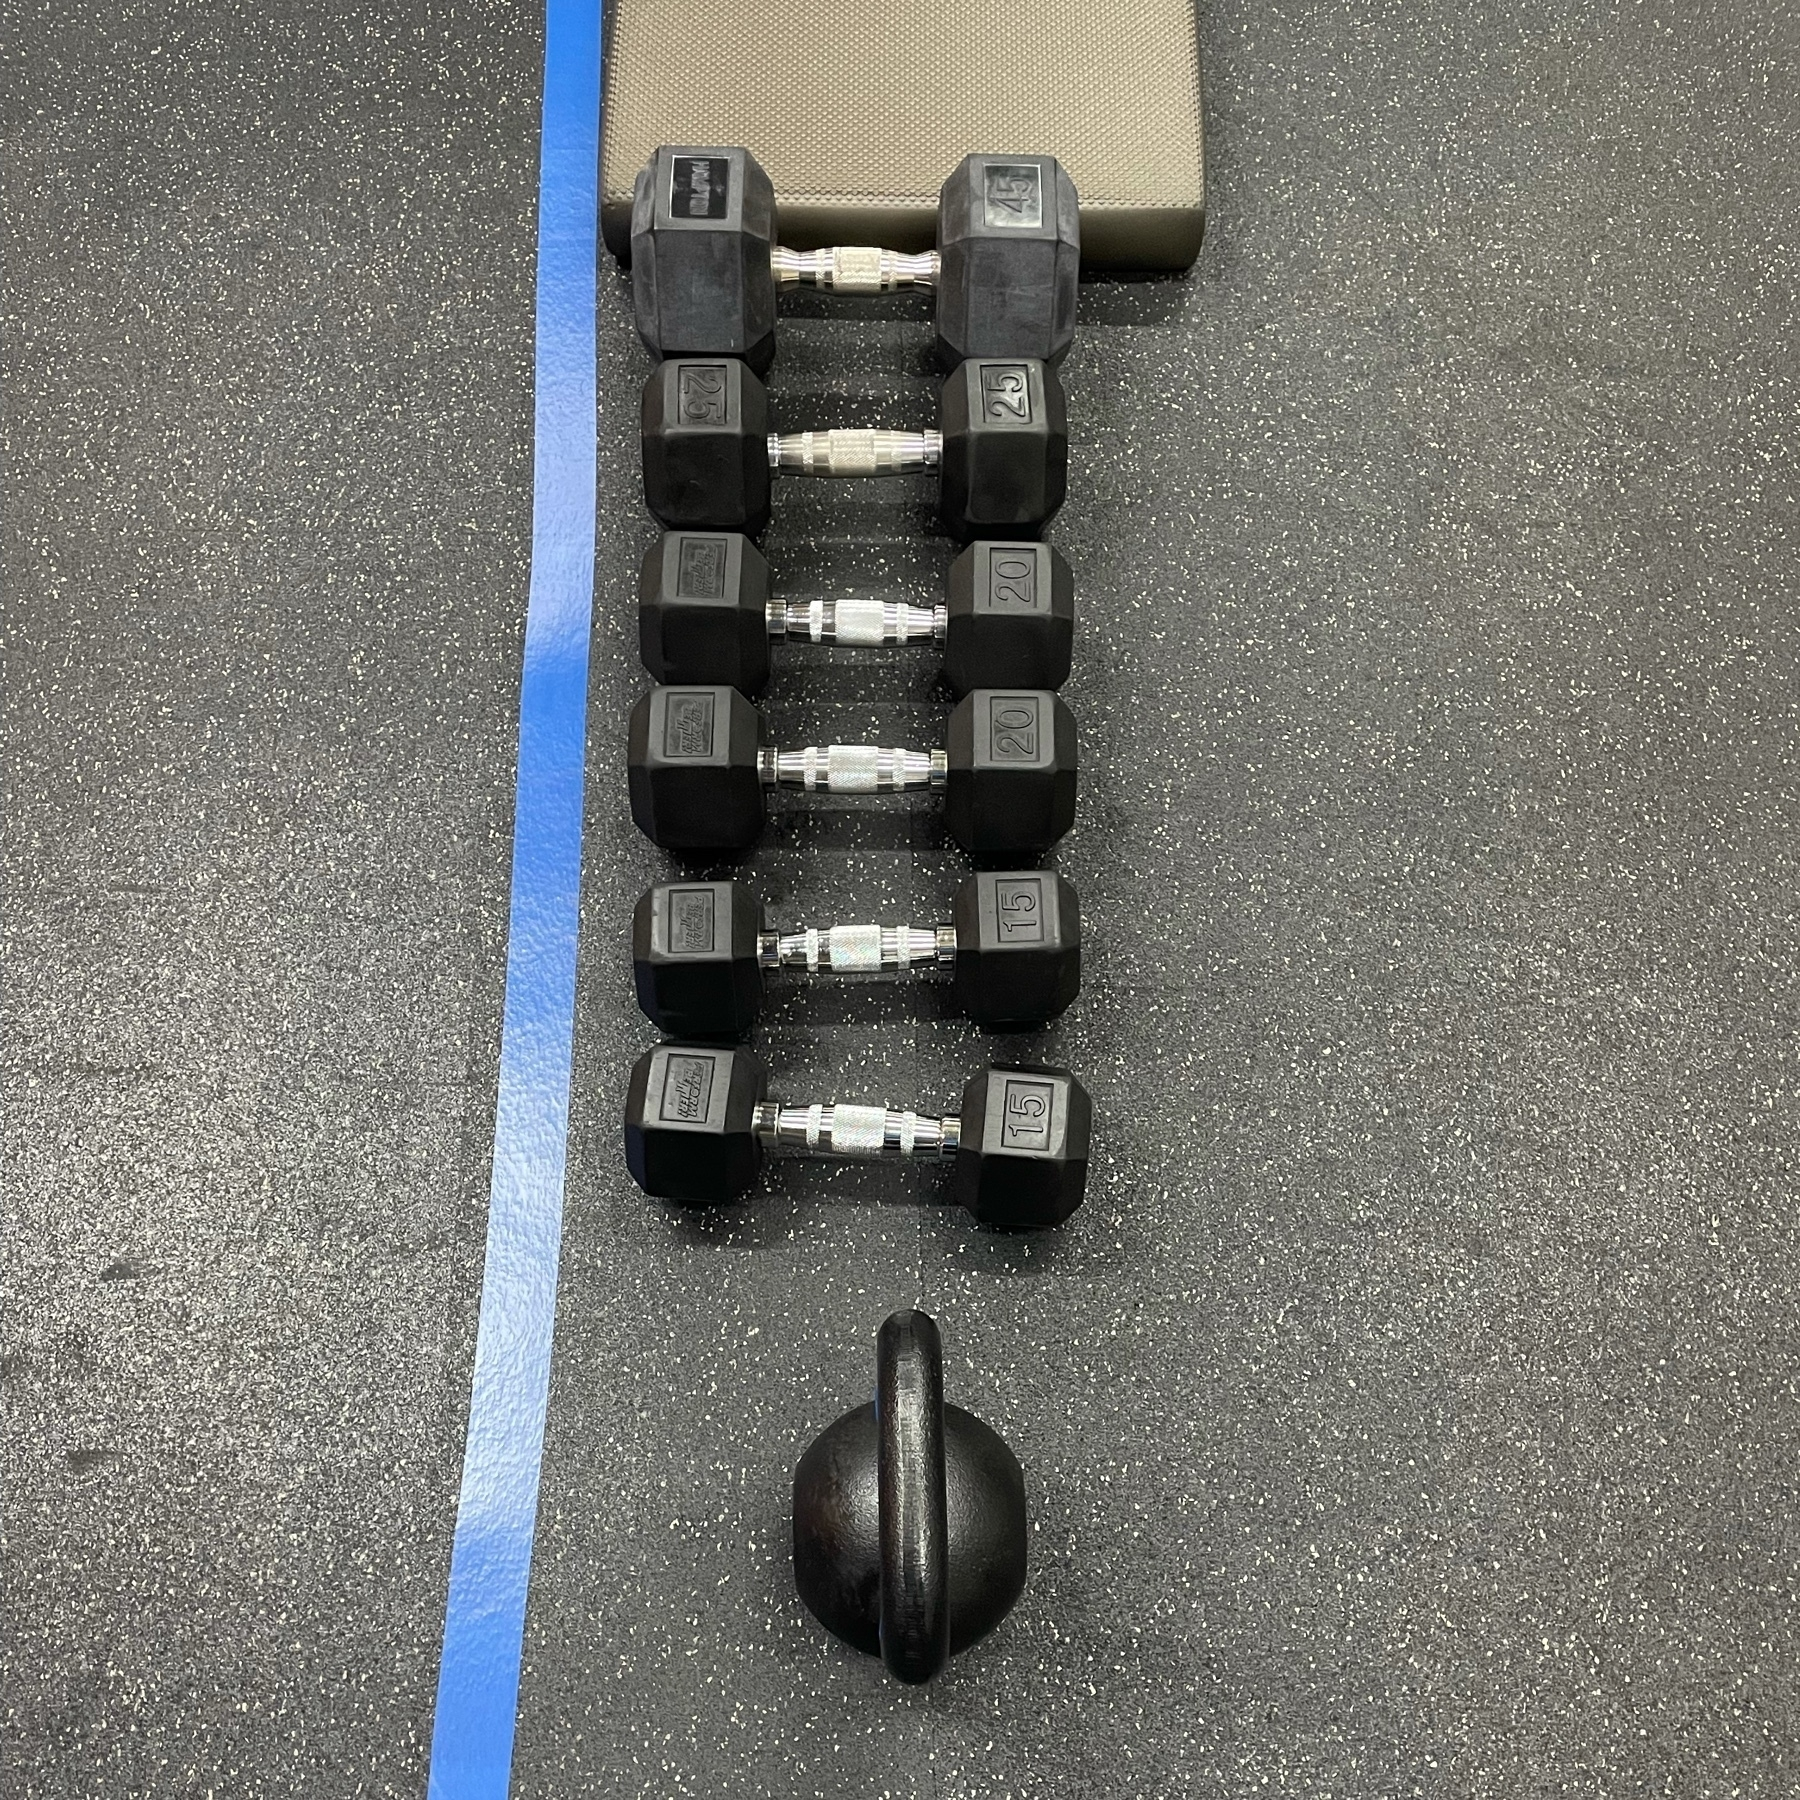 A collection of weights lined up on the floor at my gym.